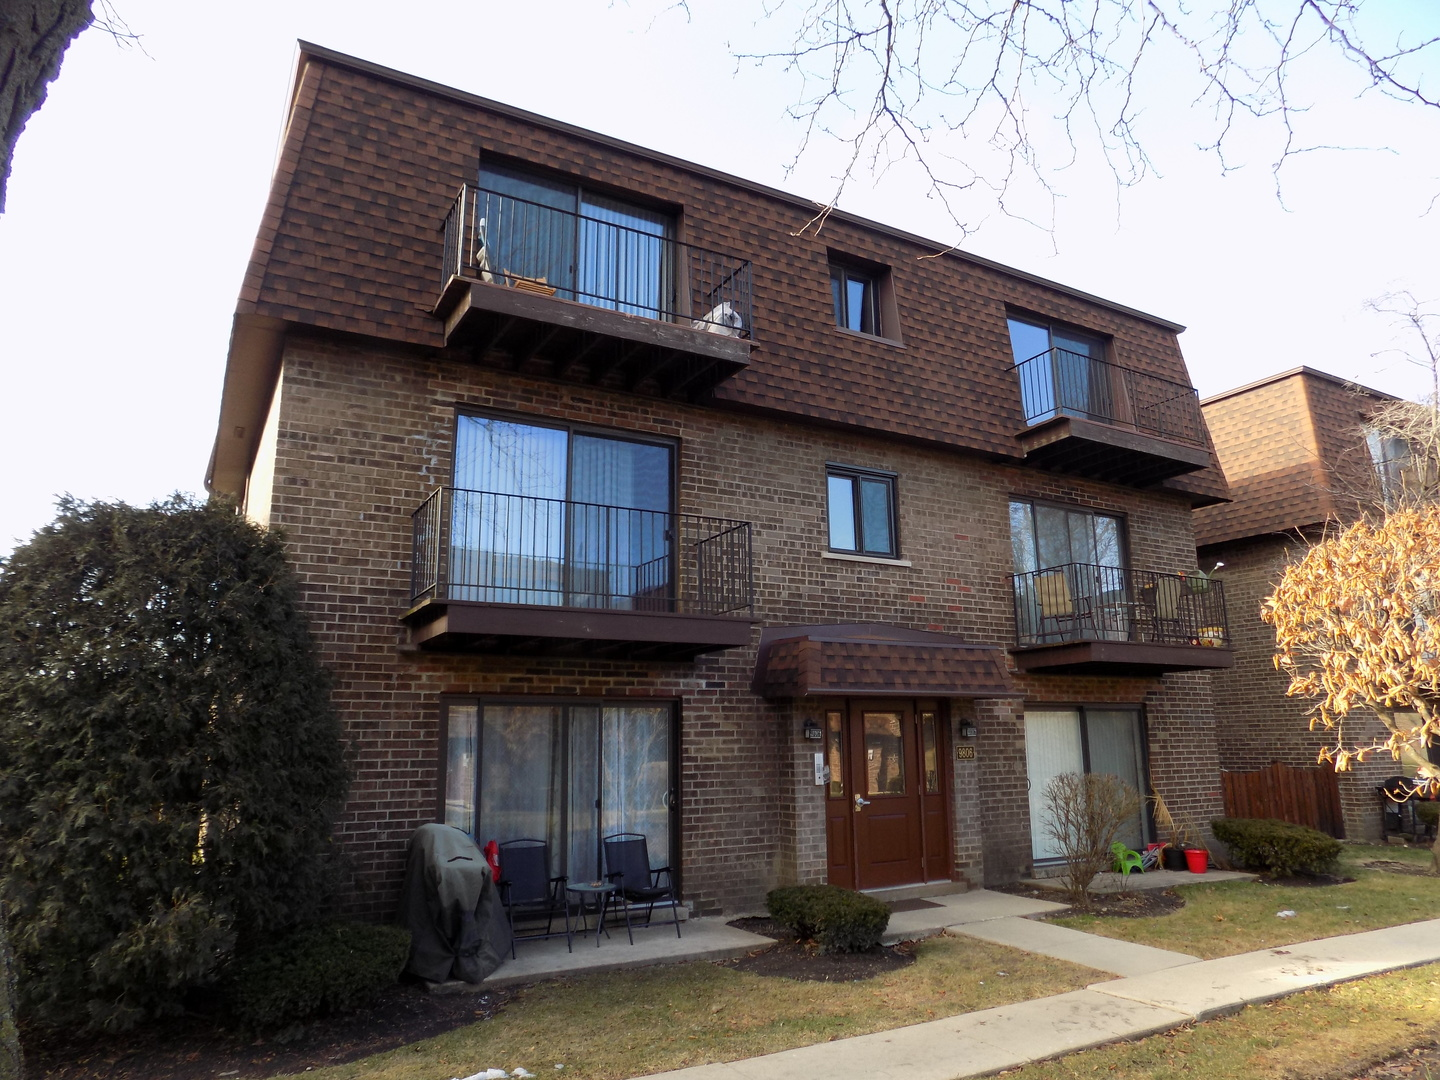 9806 Bianco Terrace, Des Plaines in Cook County, IL 60016 Home for Sale